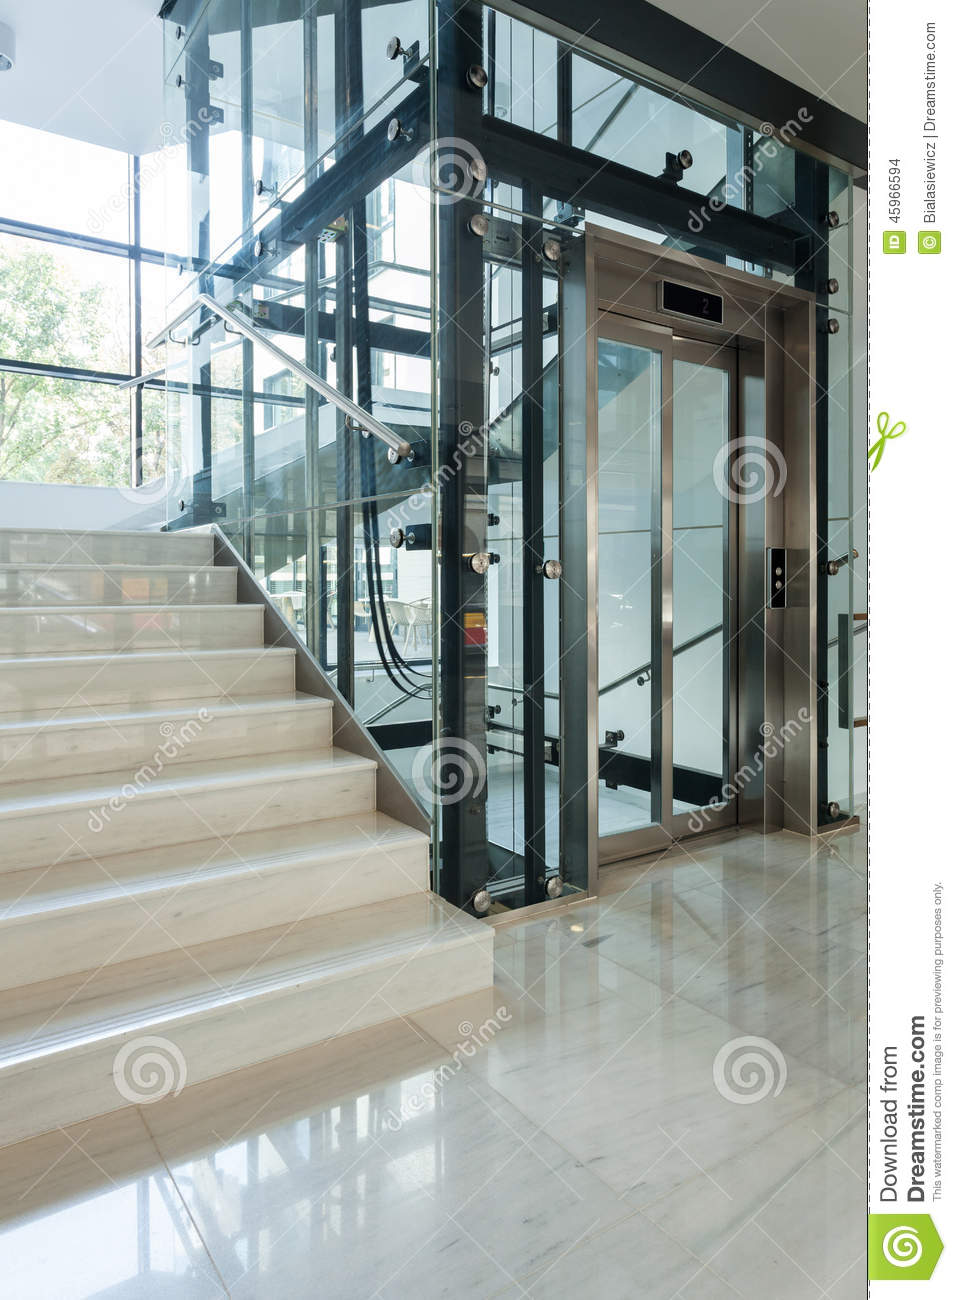 Elevator Next To Staircase Stock Photo Image 45966594